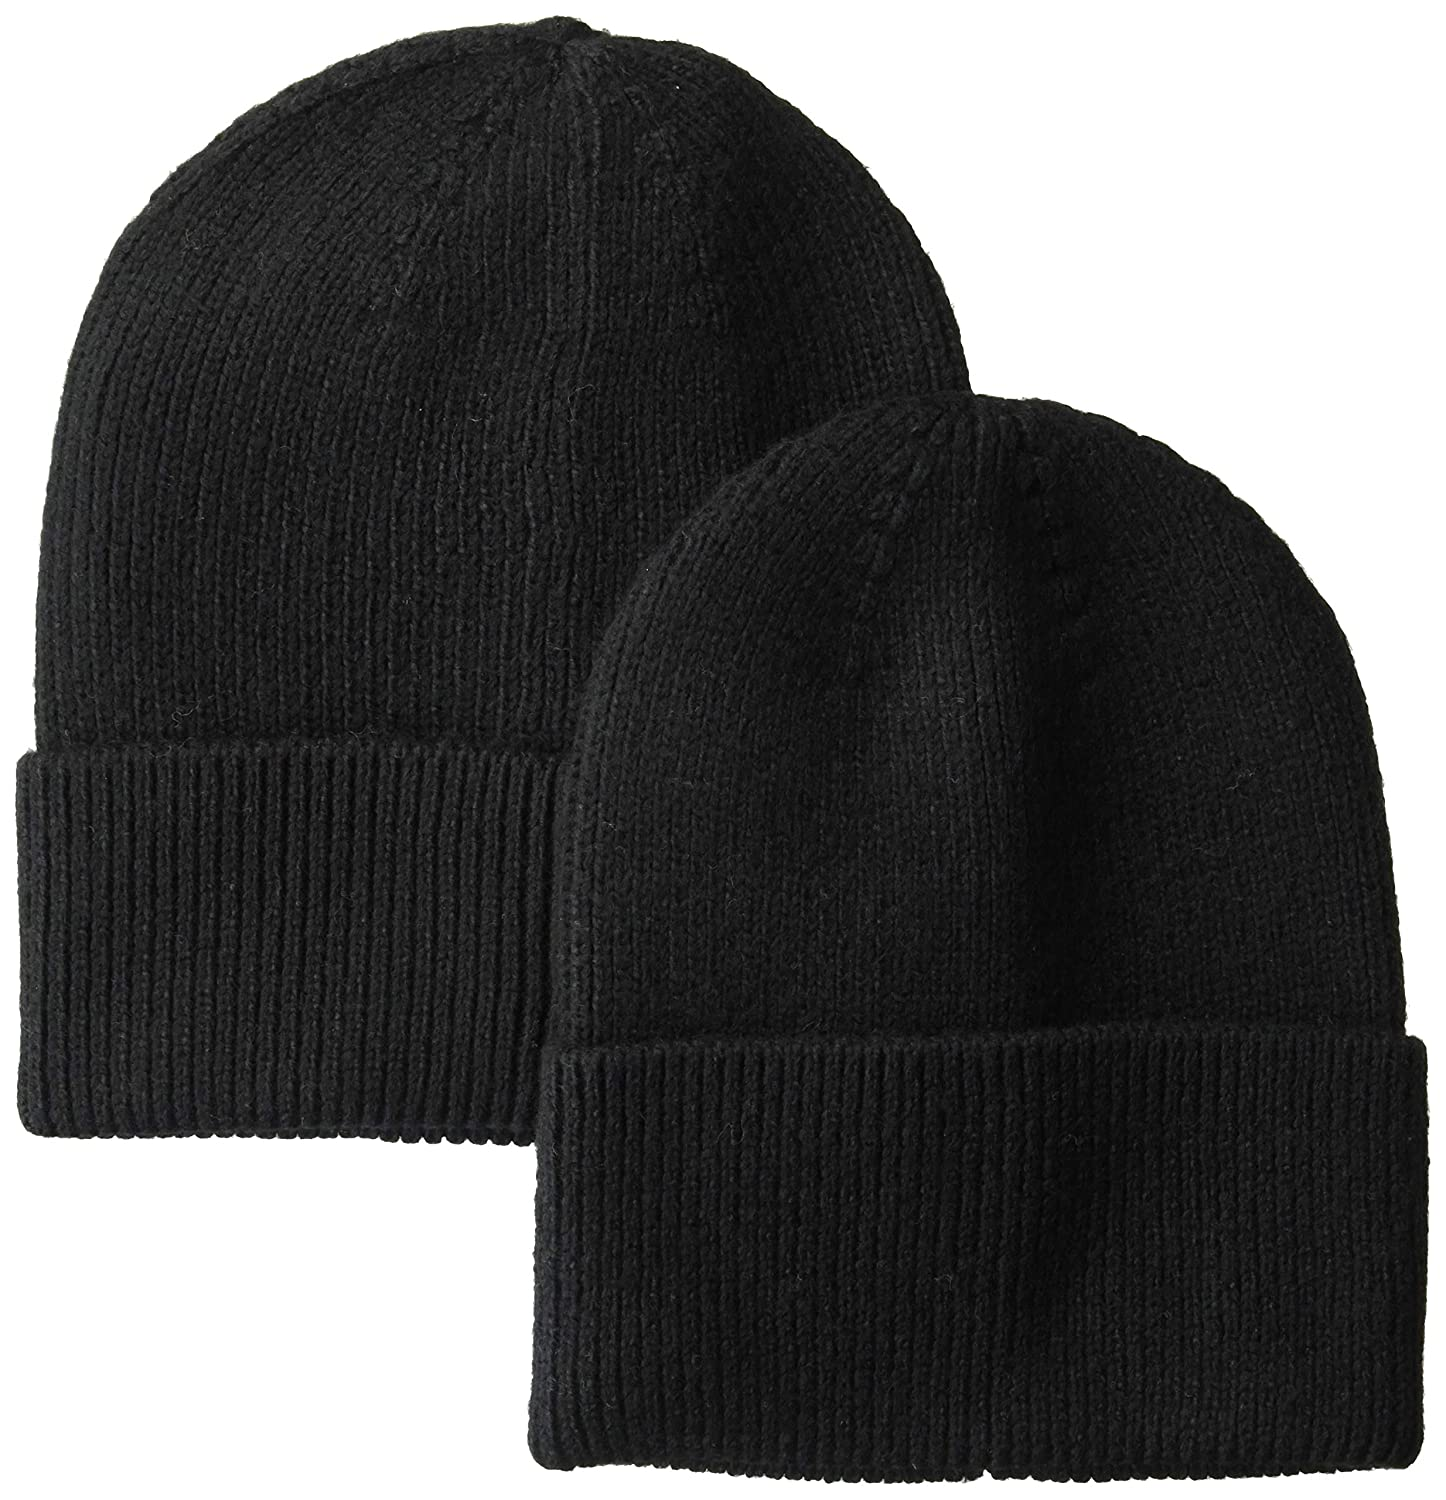 5ee3fd53e9c779 Amazon.com: Amazon Essentials Men's 2-Pack Knit Beanie Hat Black, One Size:  Clothing